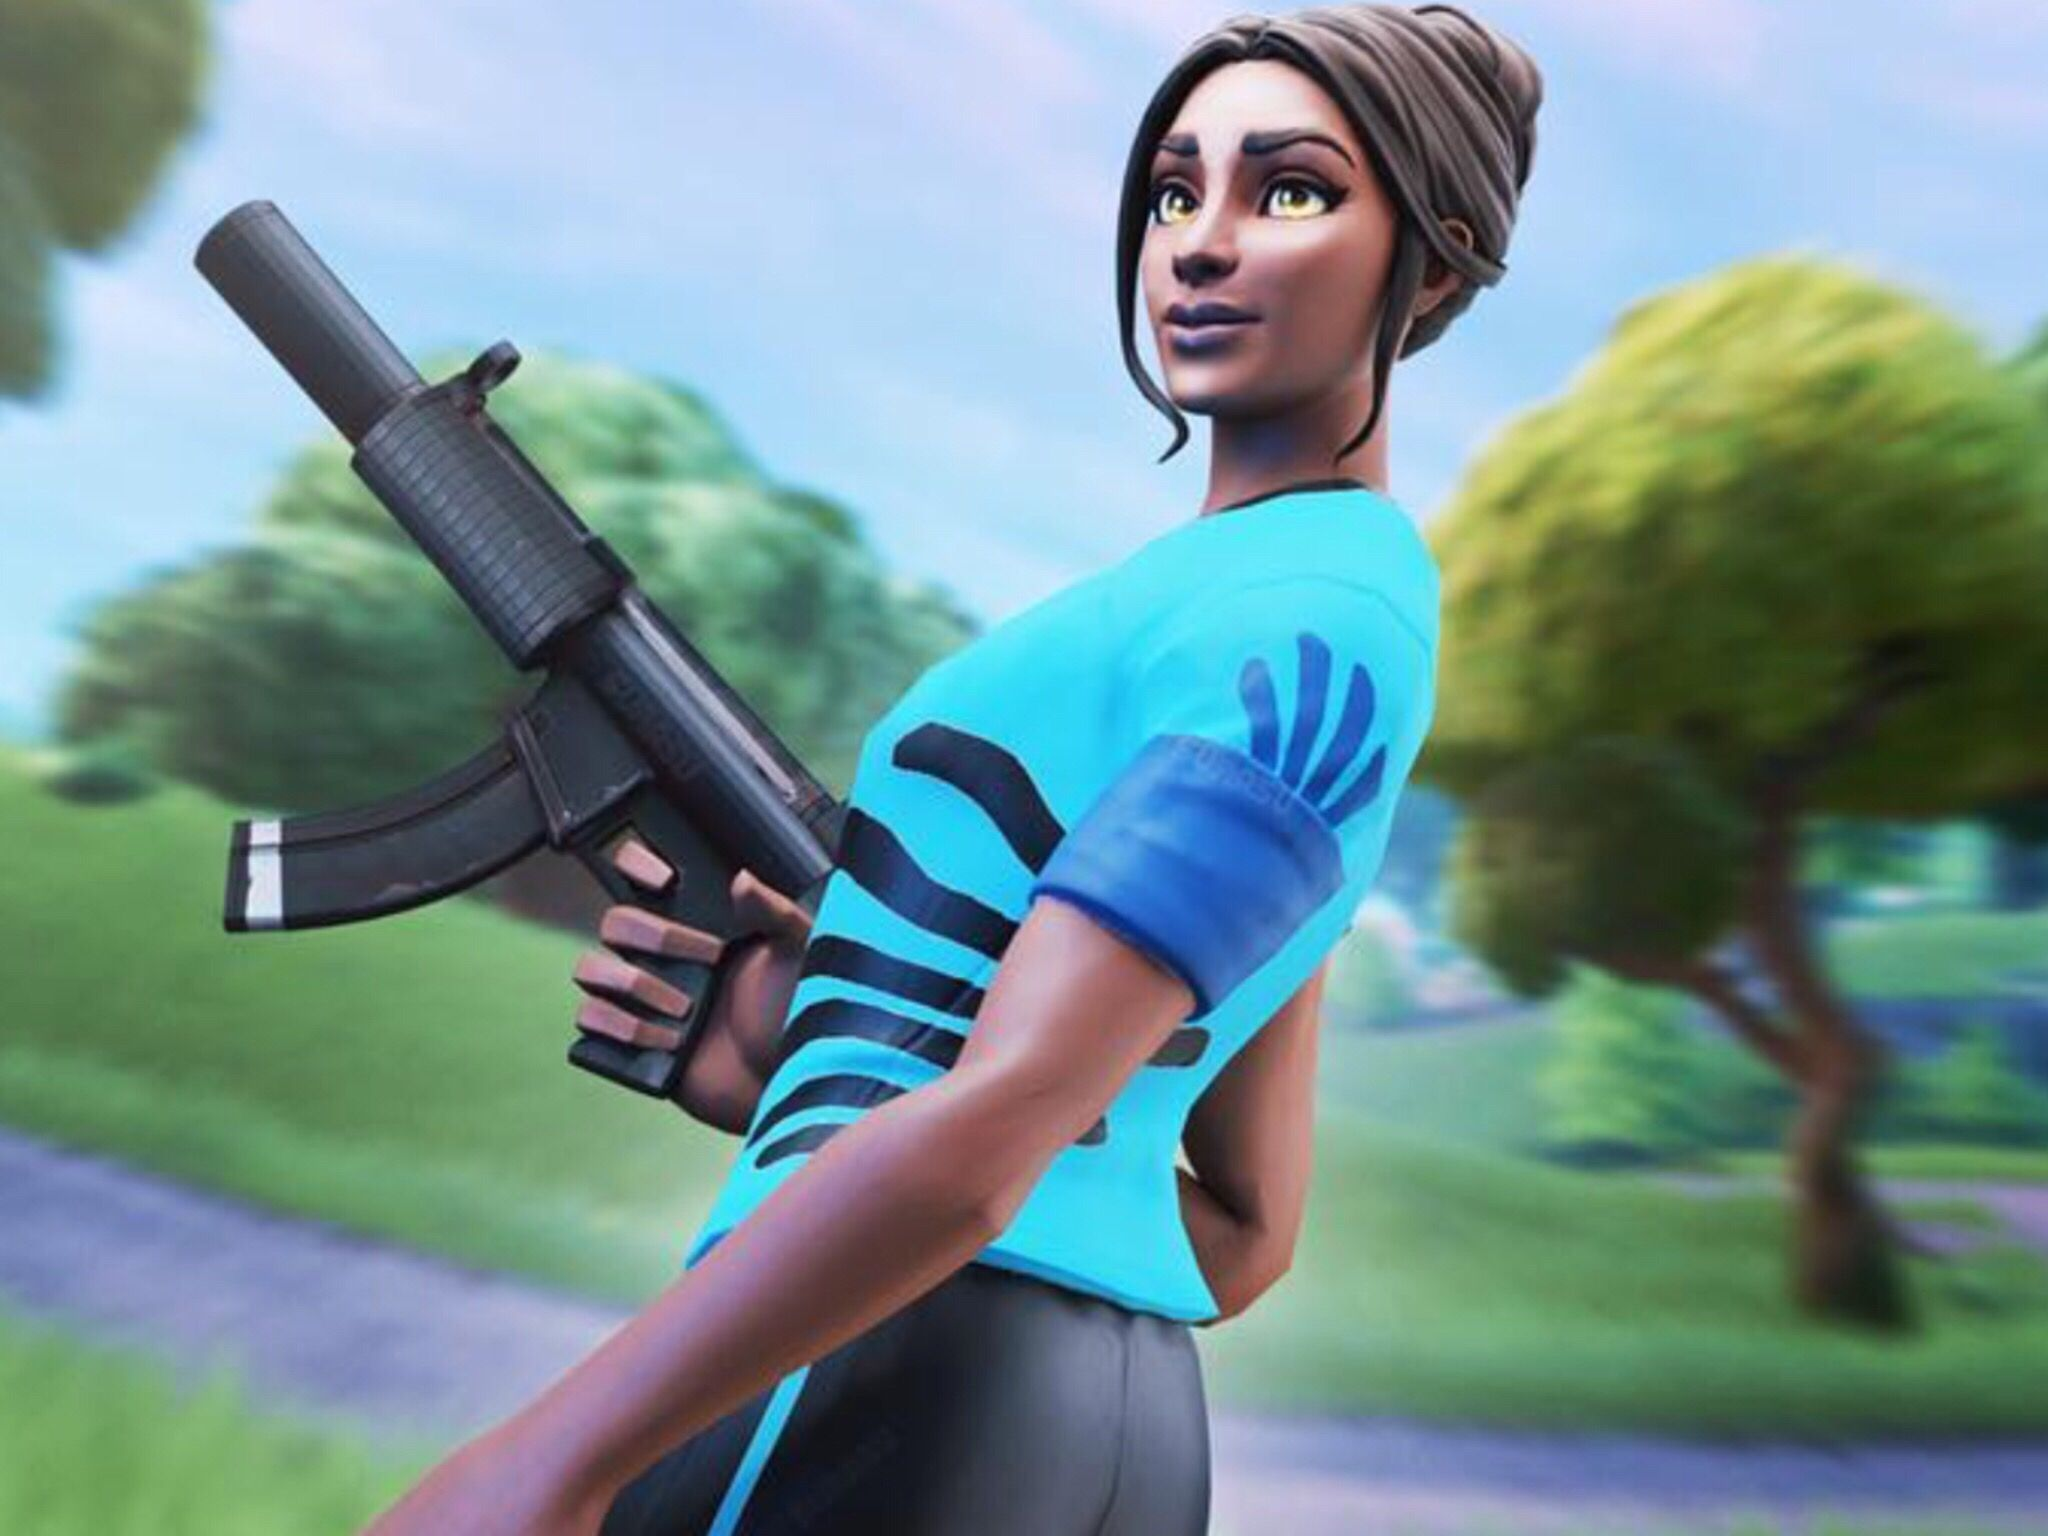 Fortnite Thumbnails Wallpapers Top Free Fortnite Thumbnails Backgrounds Wallpaperaccess